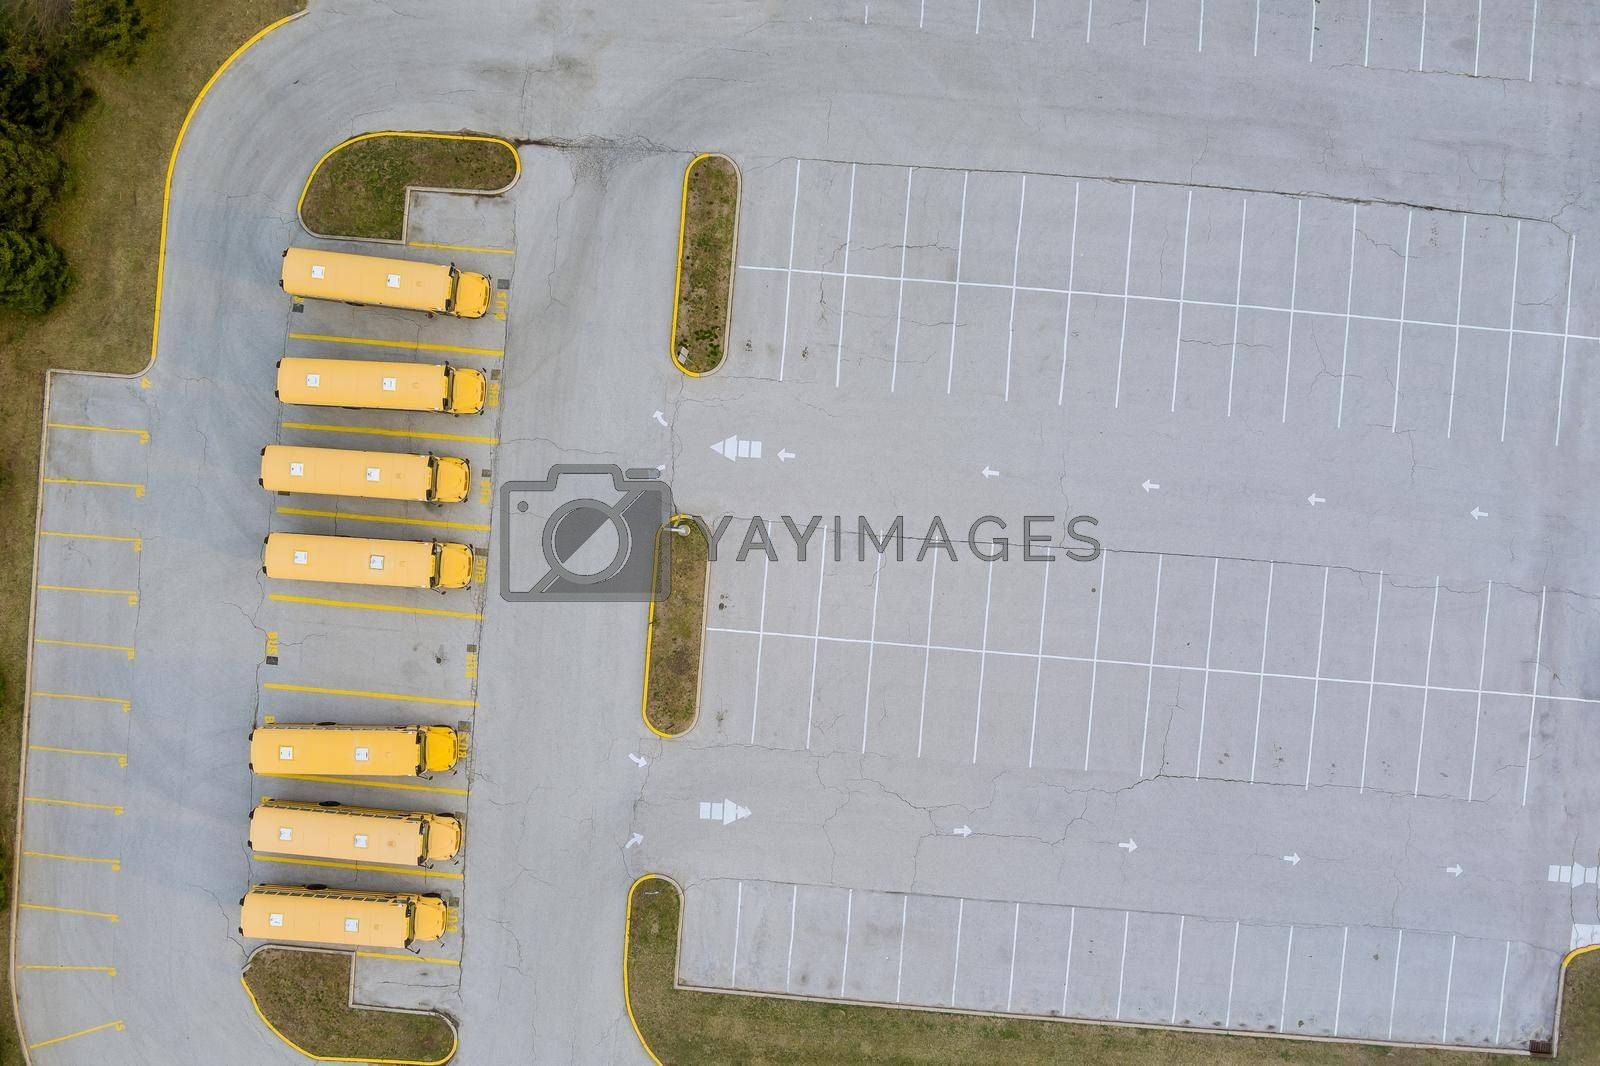 Aerial top view the yellow school buses parked near the high school